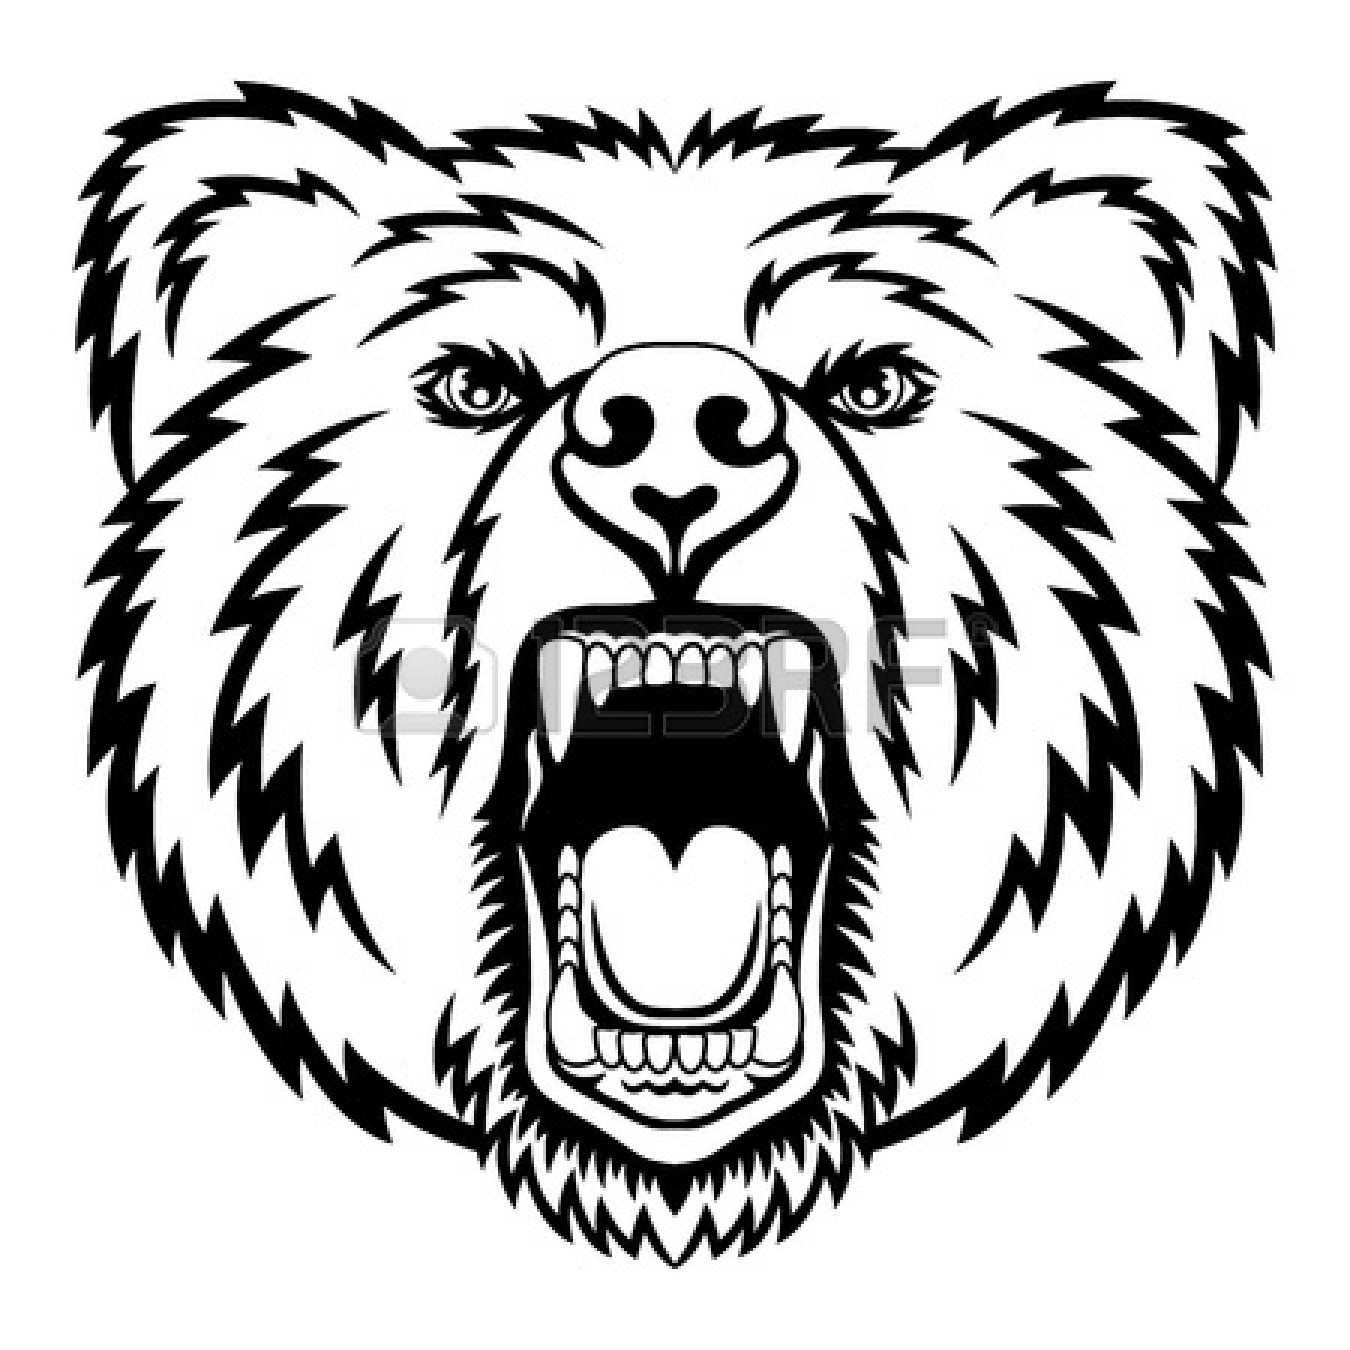 how to draw a grizzly bear face standing black bear drawing clipart panda free clipart how draw grizzly face bear a to